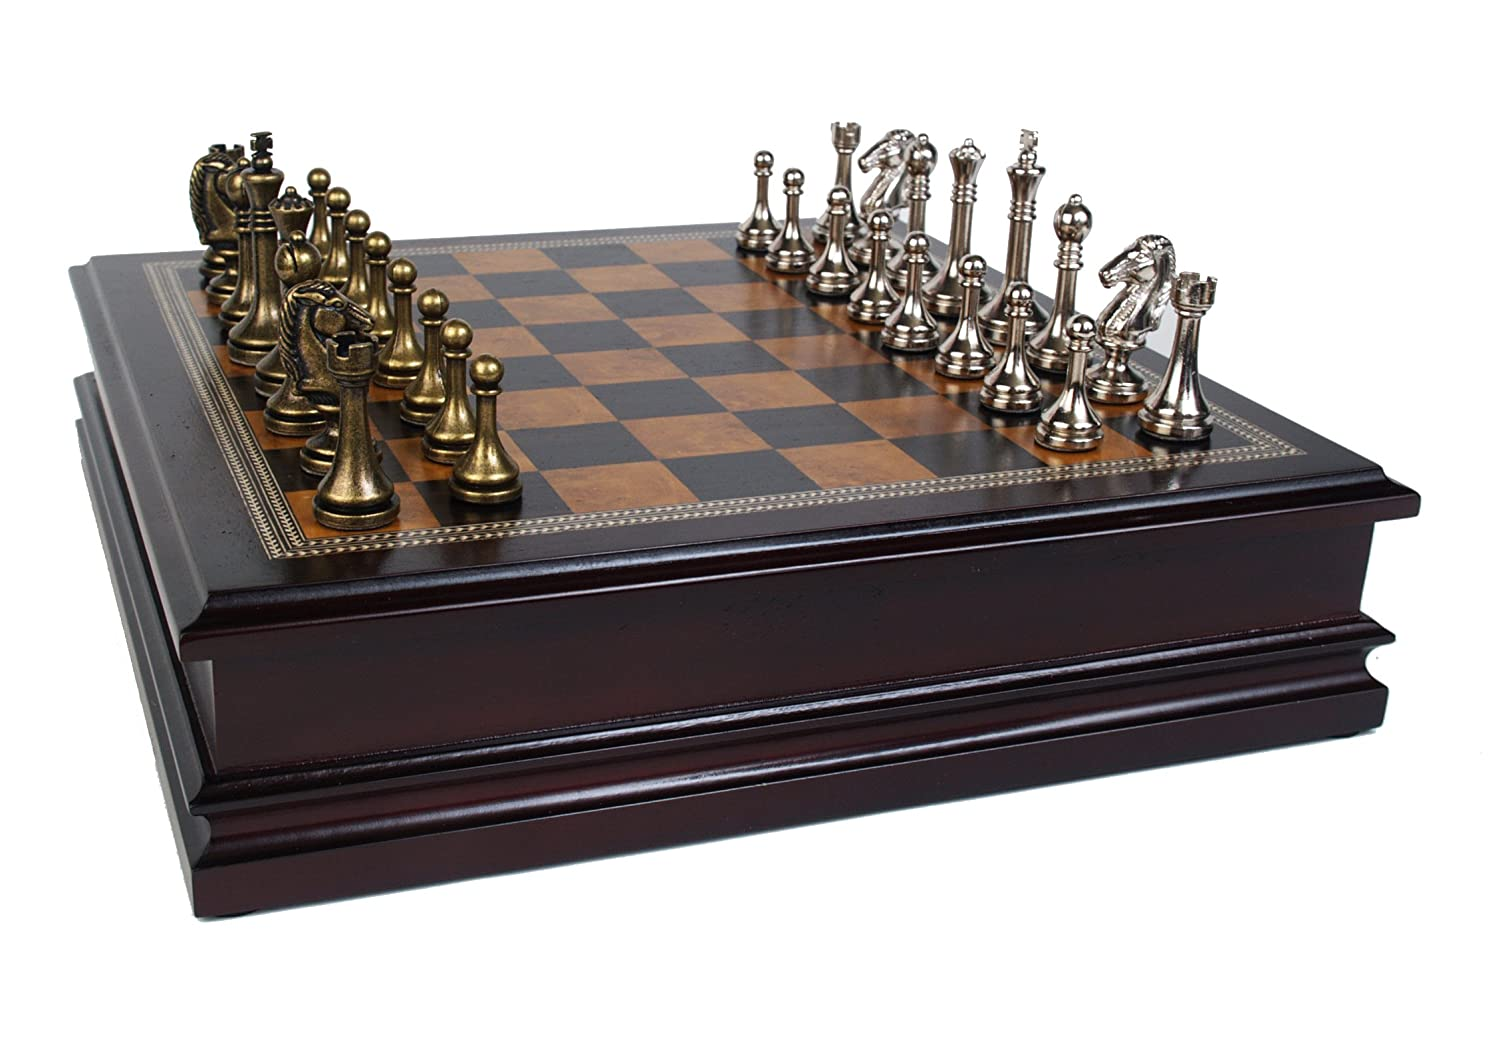 Amazon.com Classic Game Collection Metal Chess Set With Deluxe Wood Board and Storage - 2.5  King Toys u0026 Games  sc 1 st  Amazon.com & Amazon.com: Classic Game Collection Metal Chess Set With Deluxe Wood ...